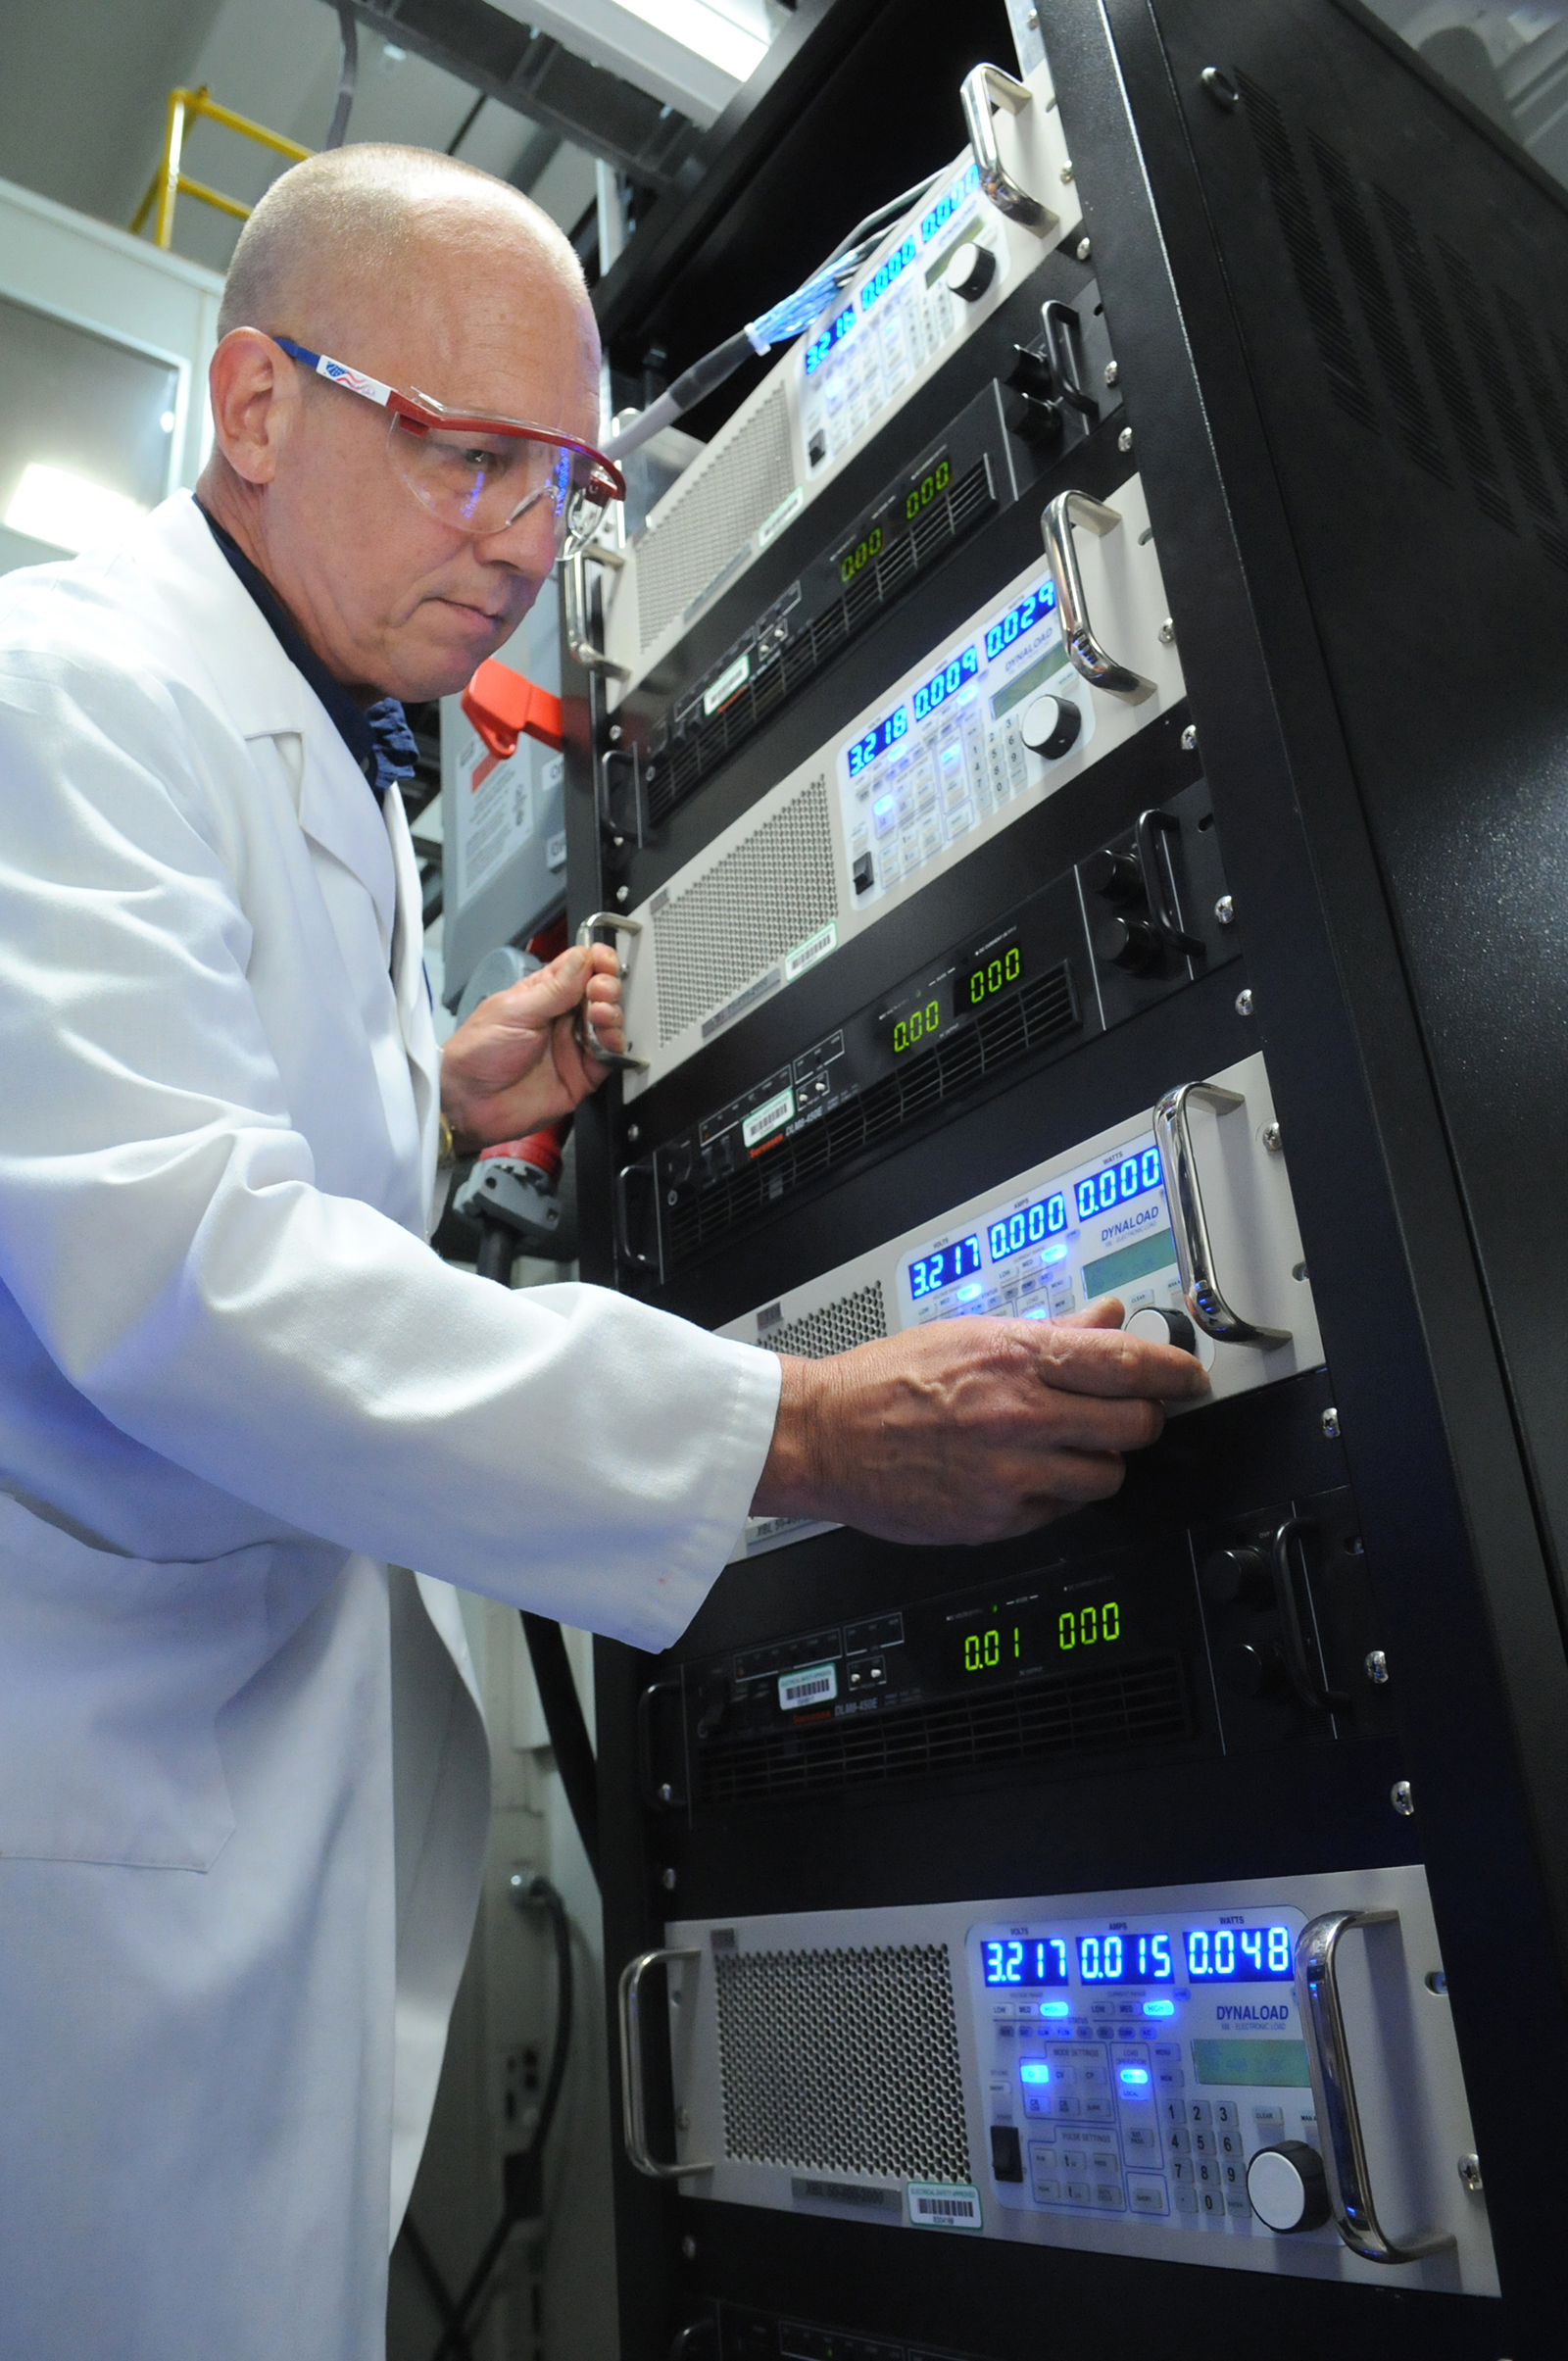 Researcher John Basco prepares for battery testing at Argonne's Elecrochemical Analysis and Diagnostics Laboratory.